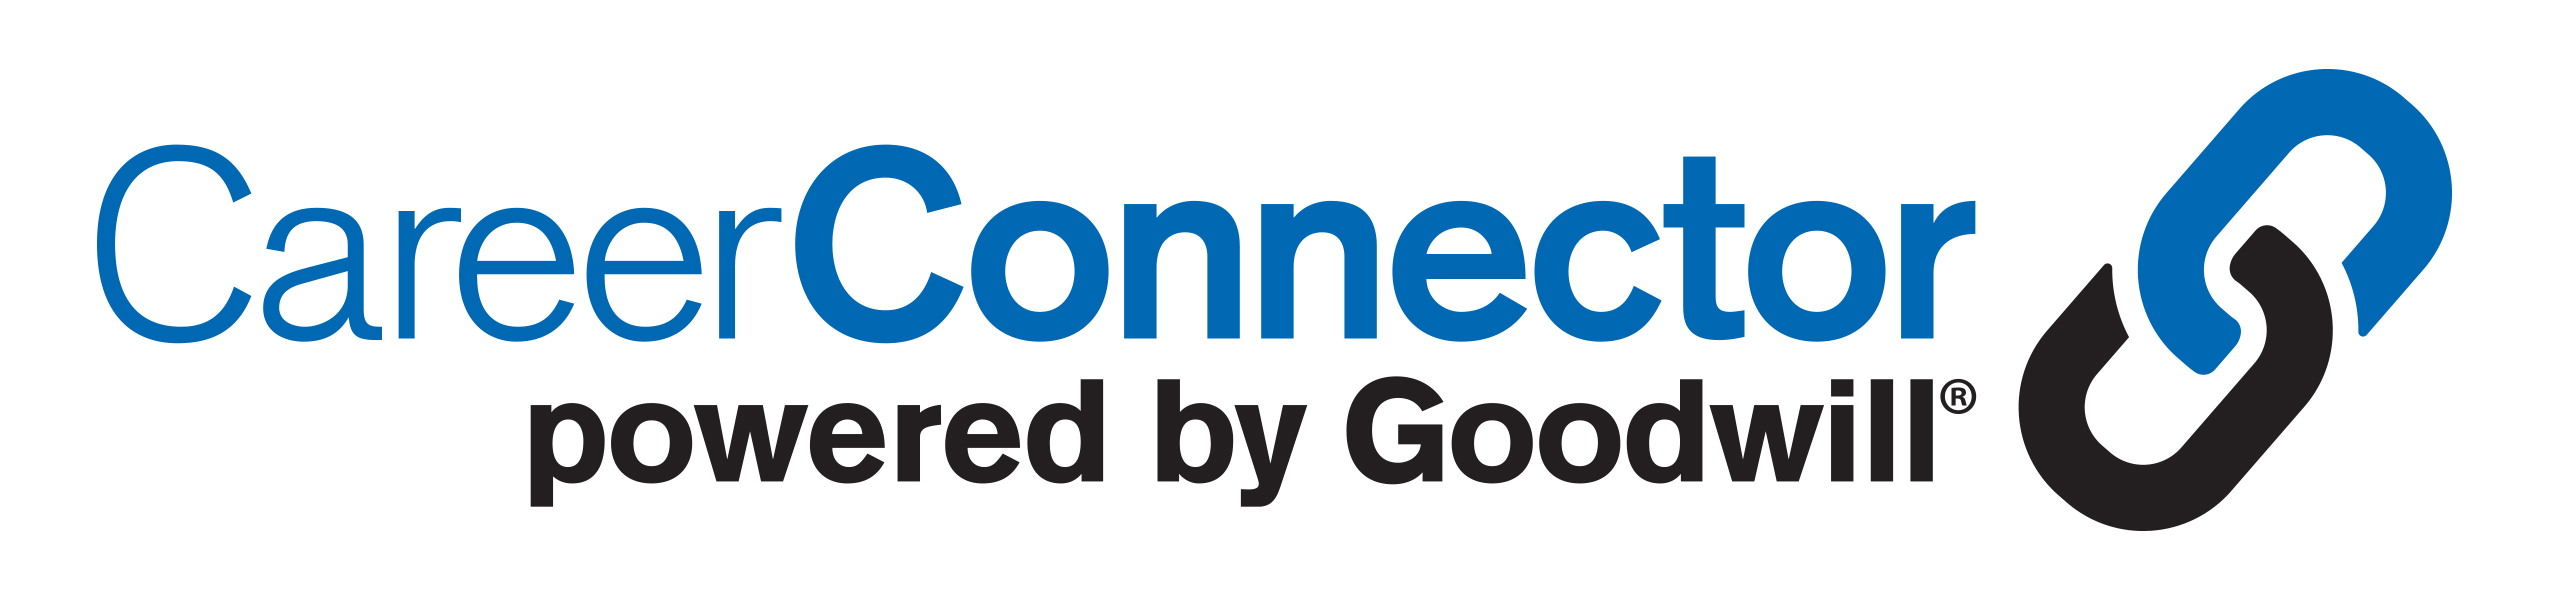 Goodwill Career Connector logo